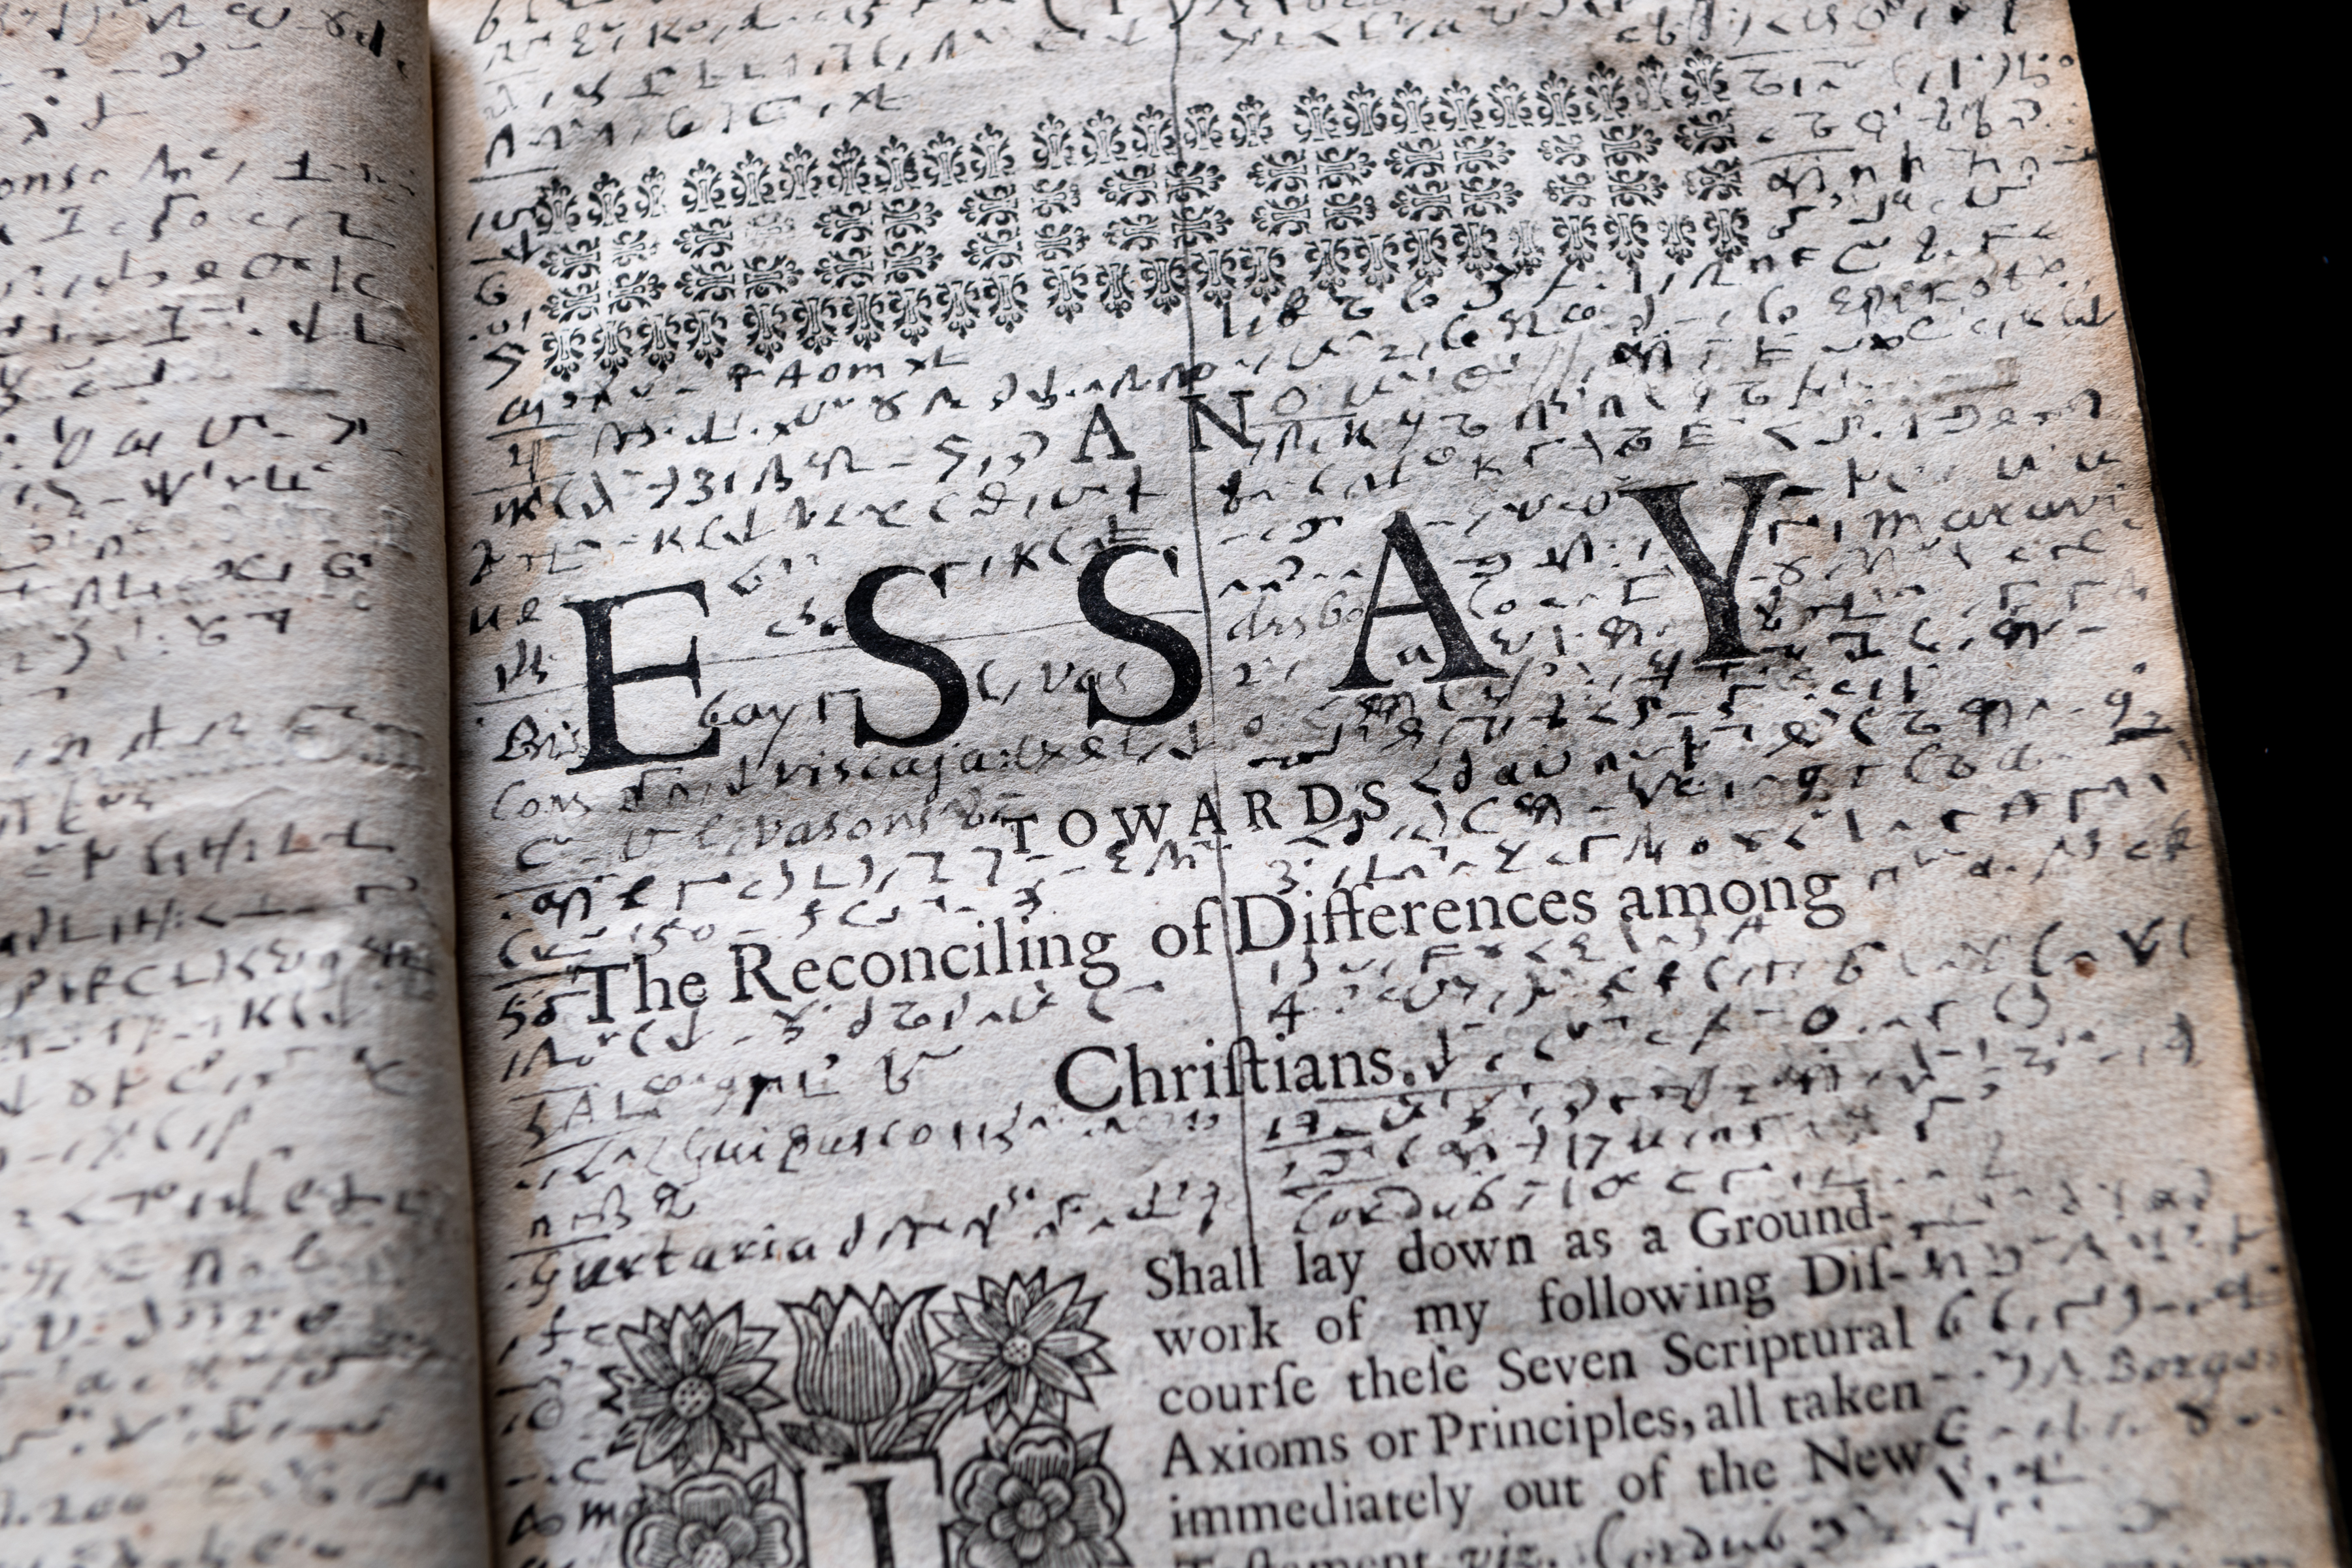 Detail of a printed book shows title page with manuscript notations throughout the blank spaces on the page.